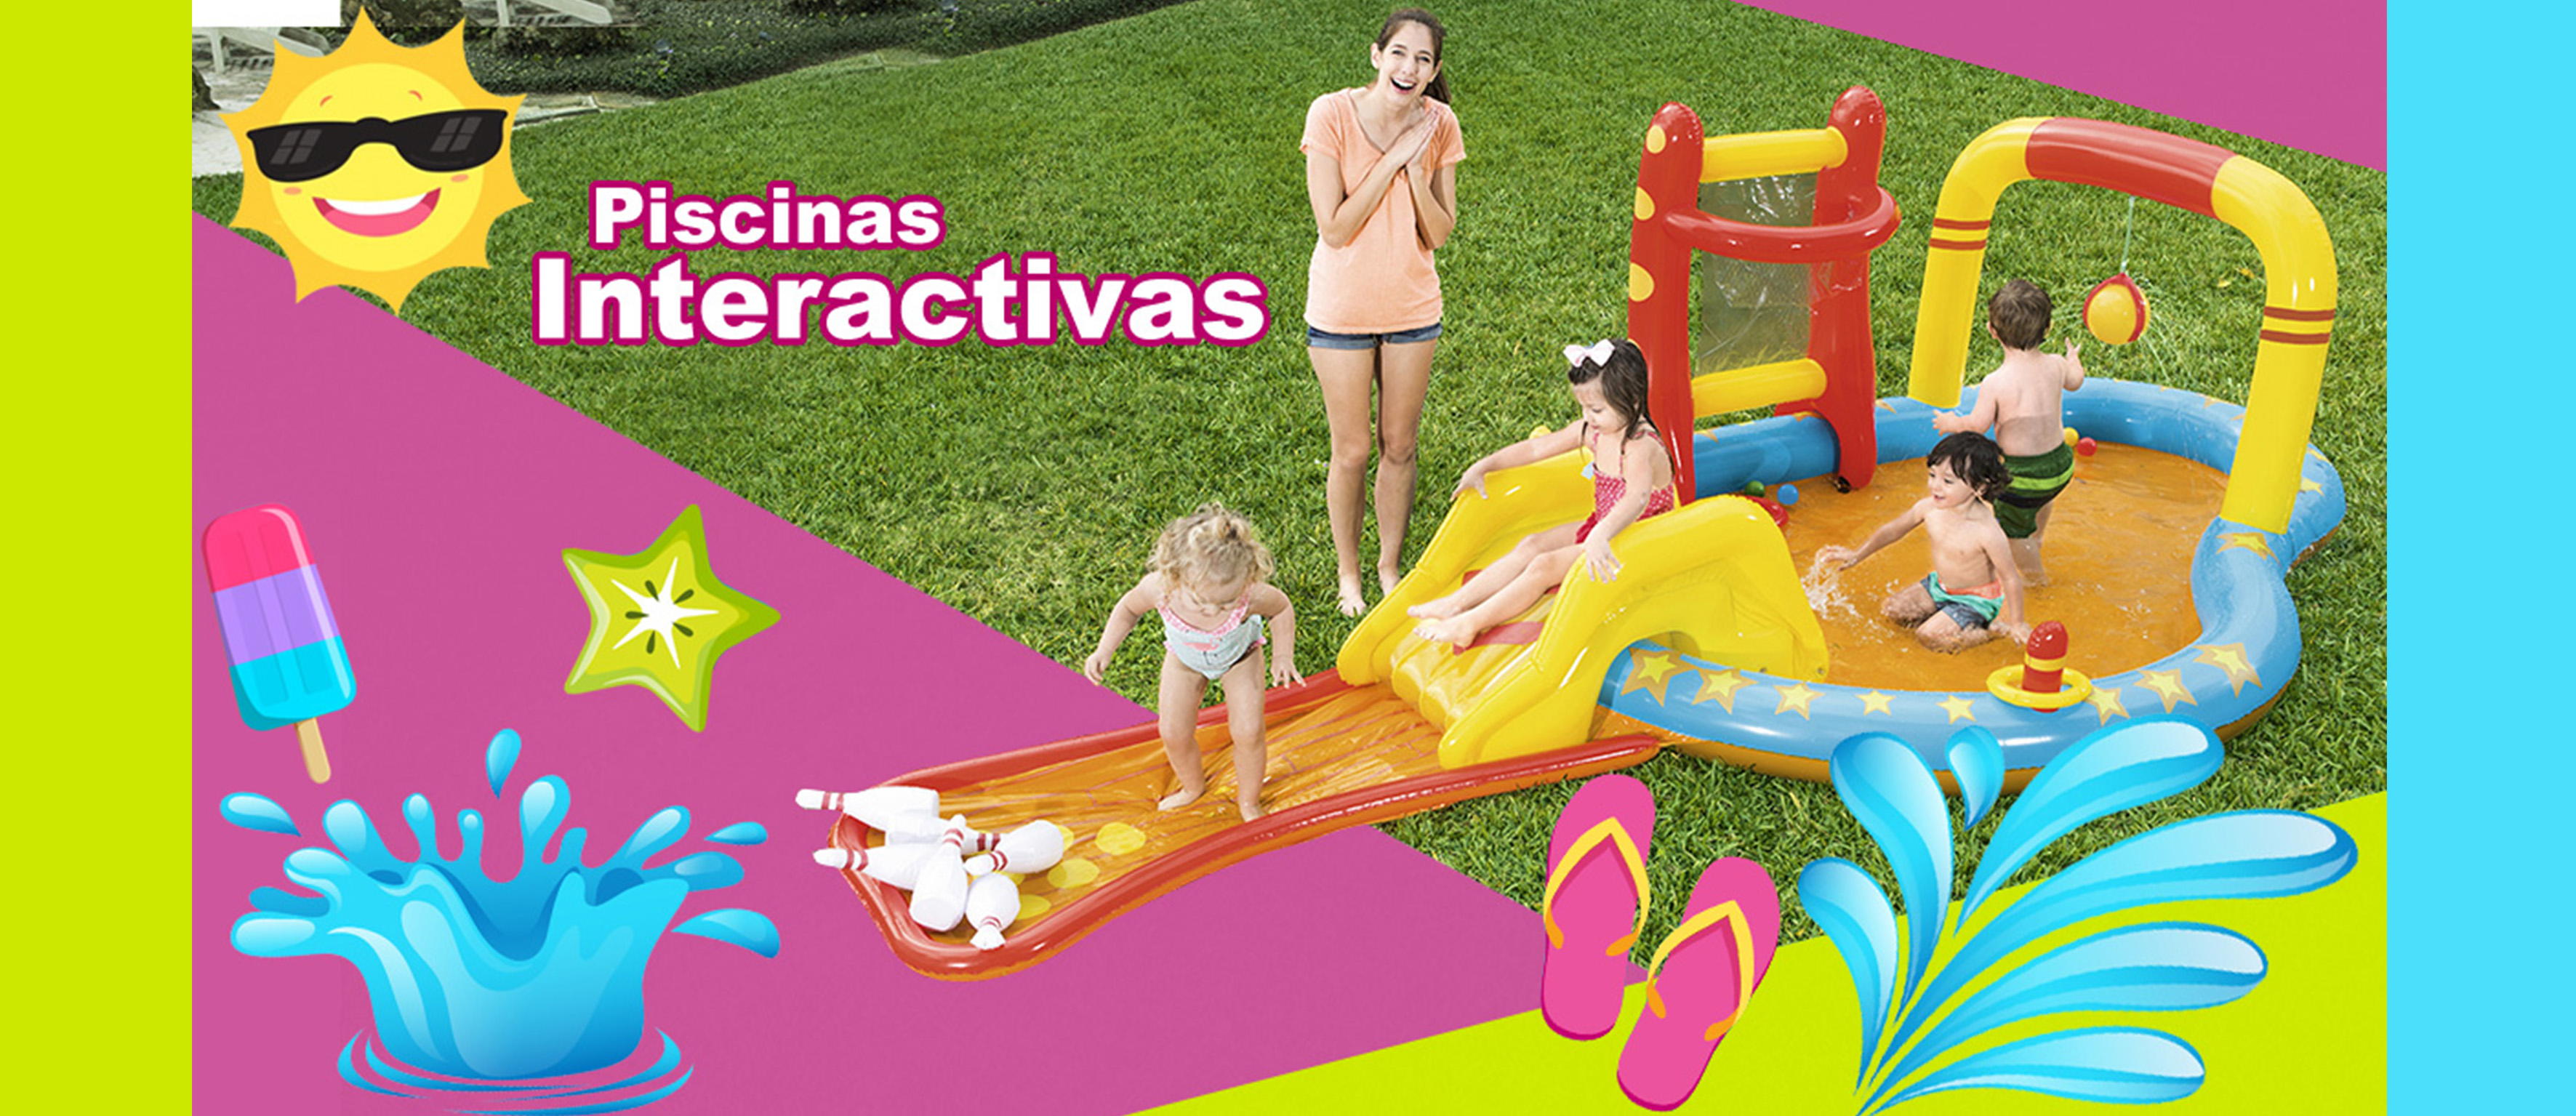 Piscinas Interactivas